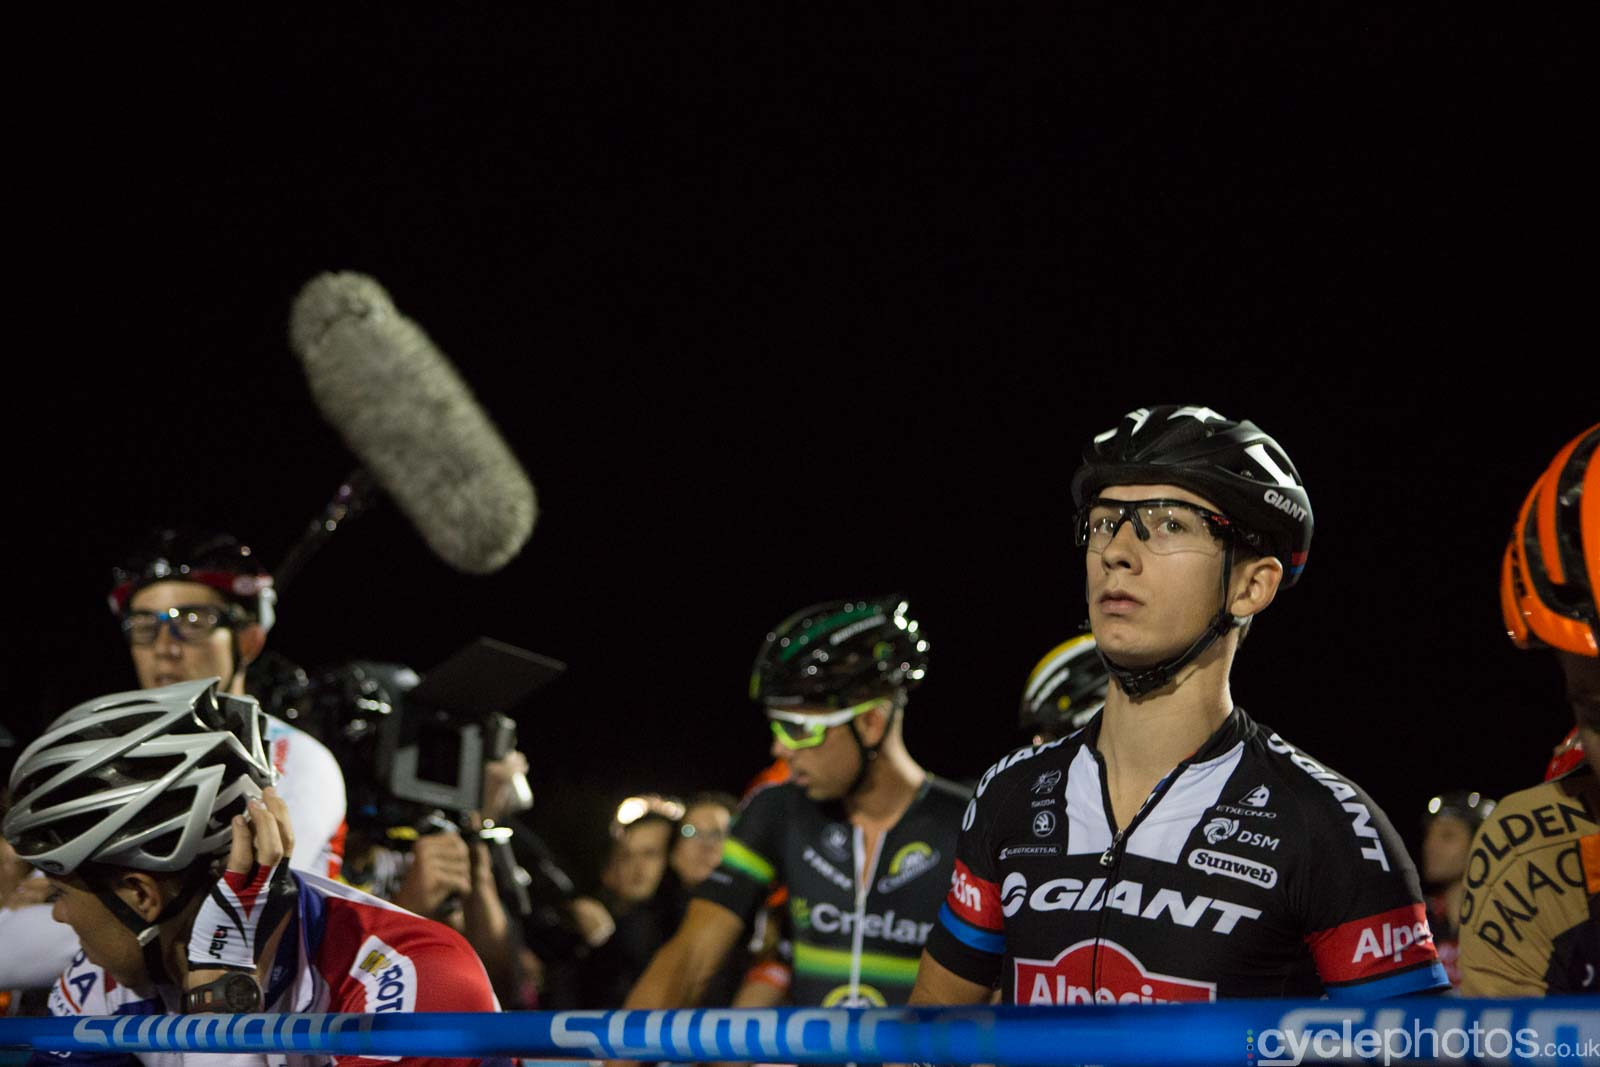 Lars van der Haar at the start of Crossvegas, the first round of the 2015 UCI Cyclocross World race in Las Vegas, USA.